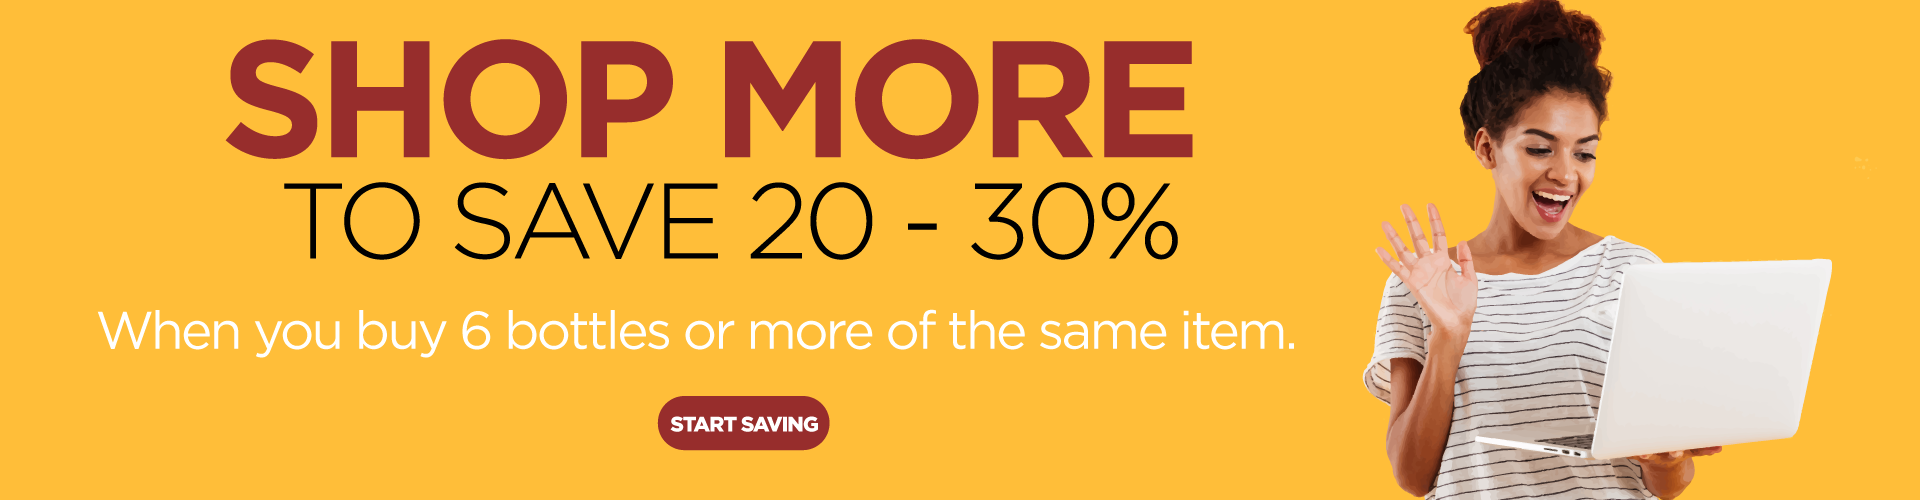 Shop More to Save More